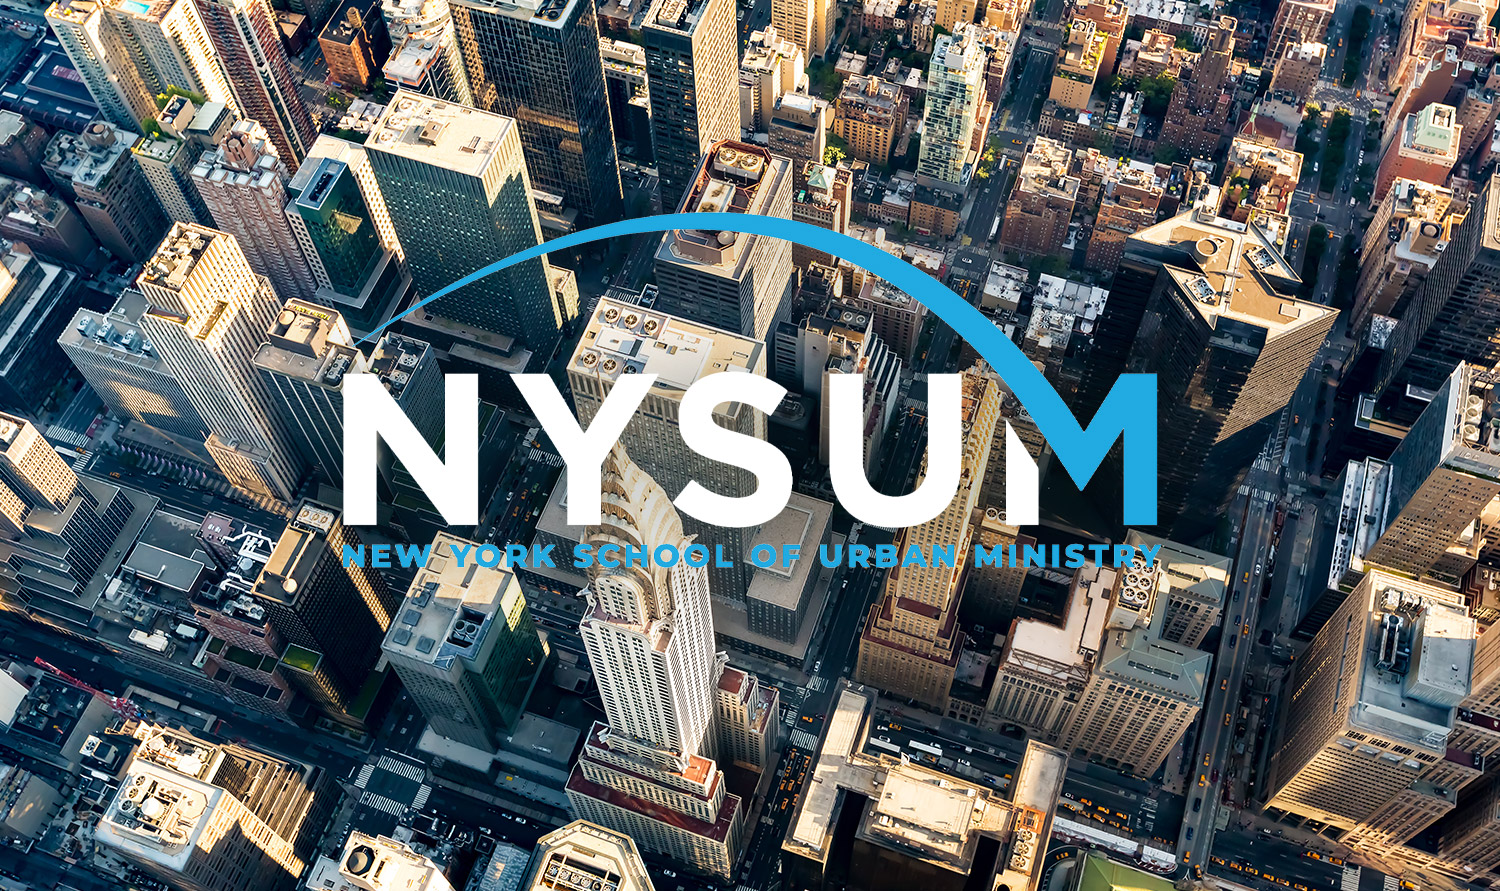 nysum-featured-image